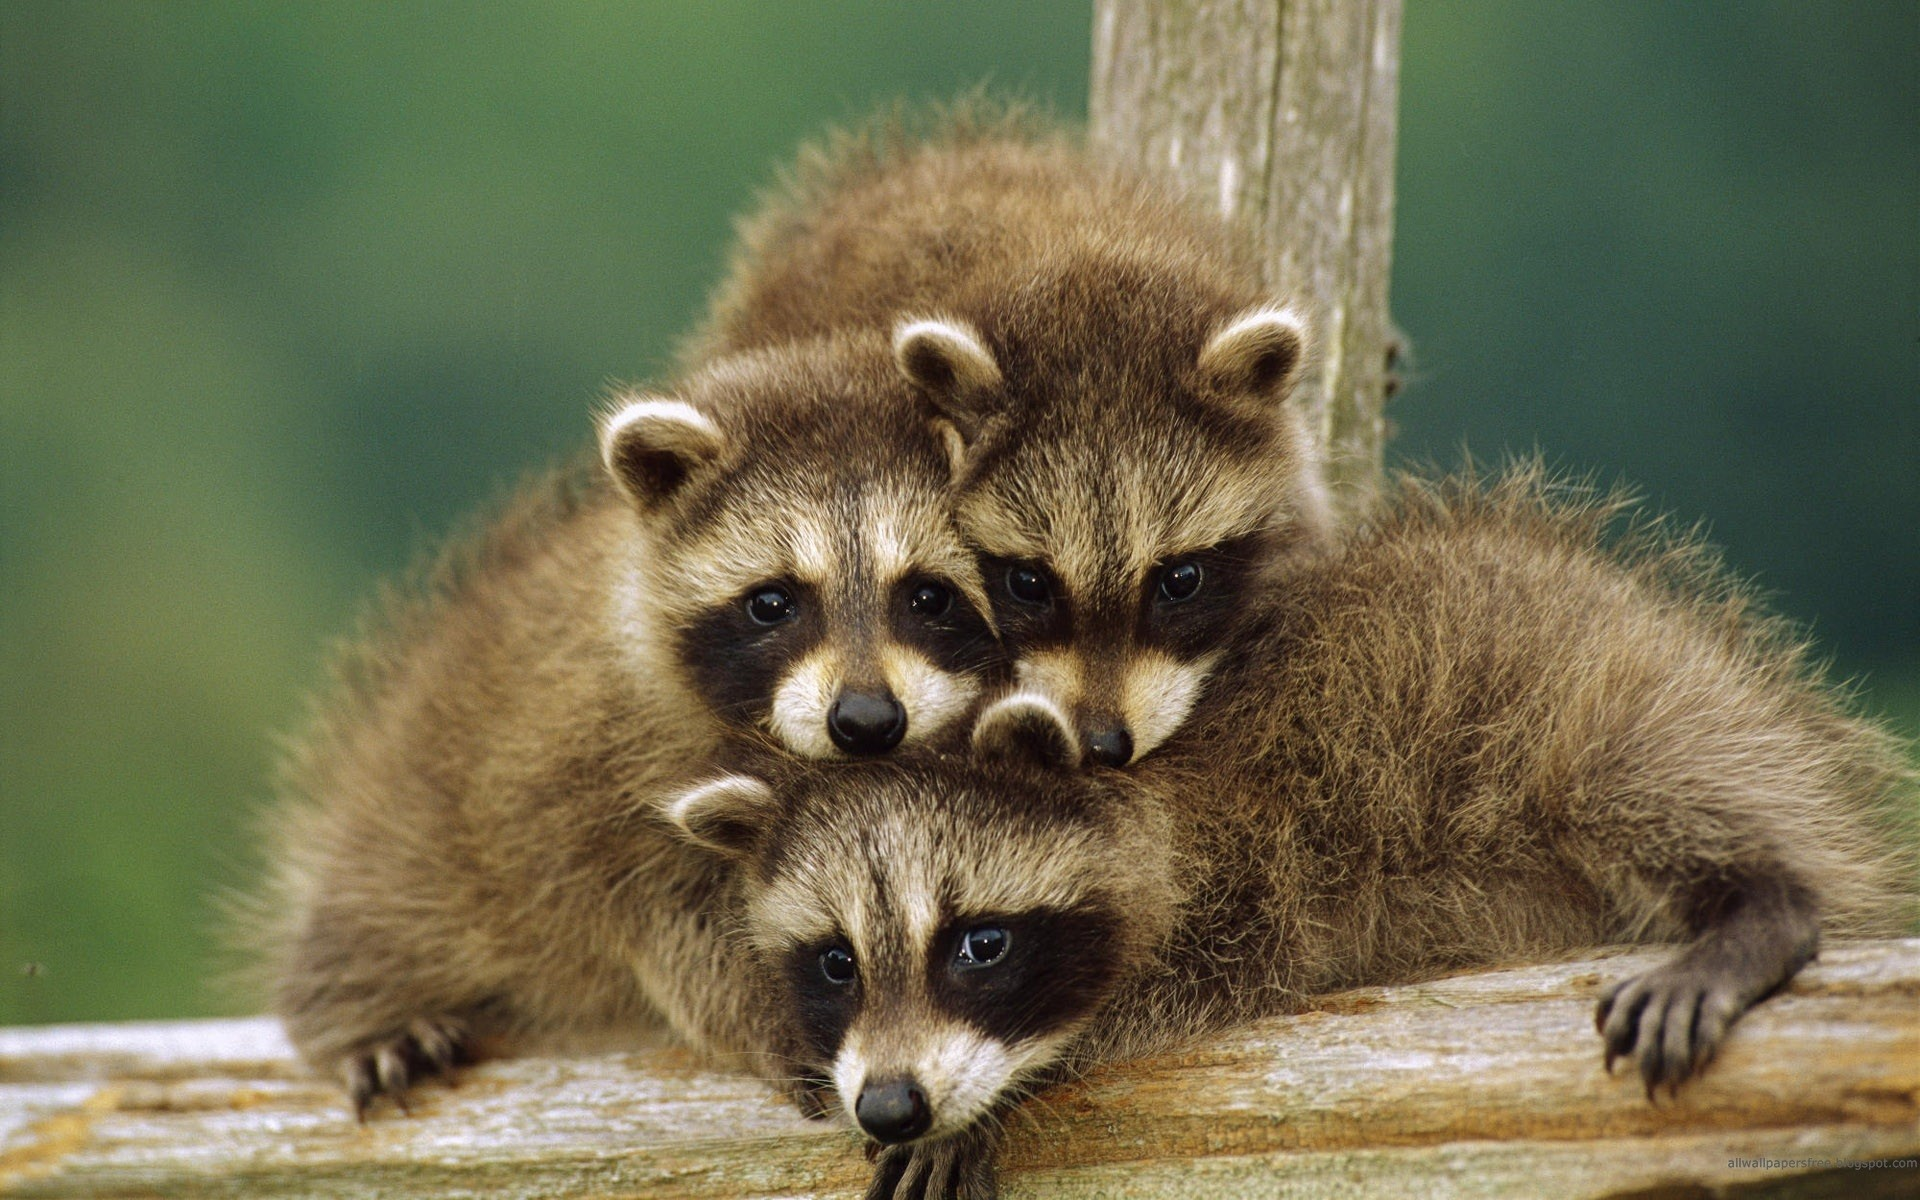 Together Is Better – Raccoons Wallpaper 1920x1200 px